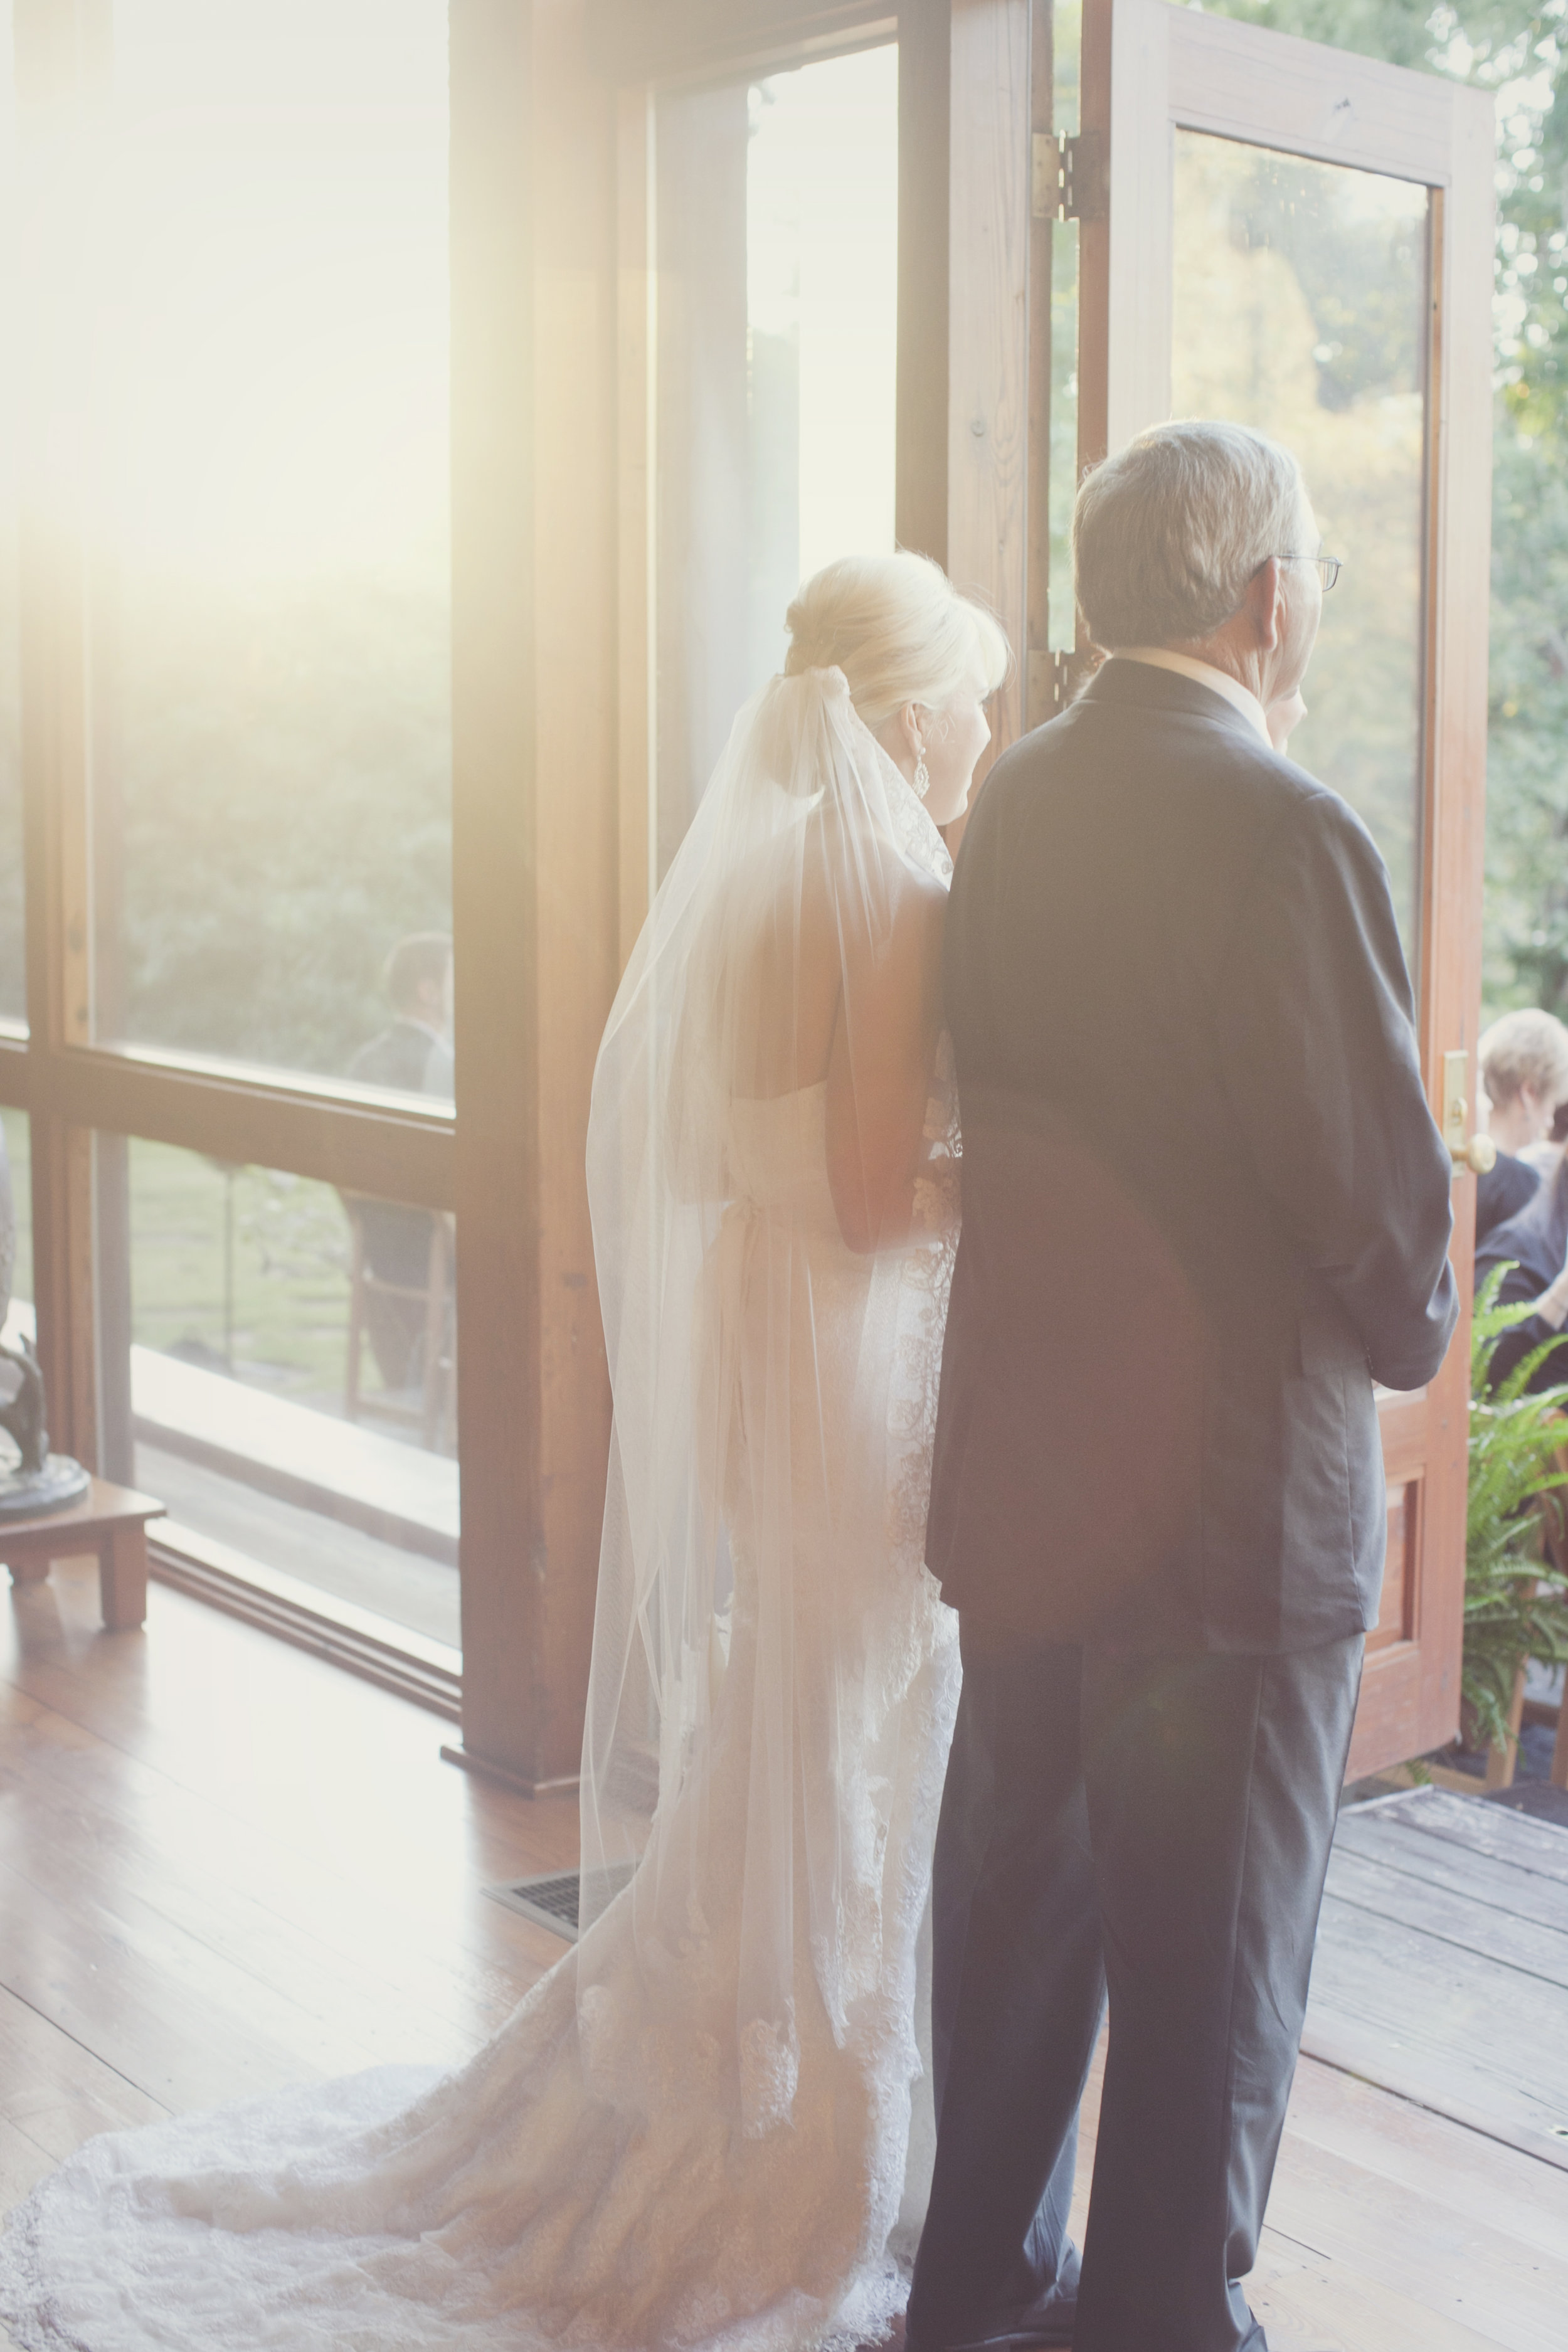 Simply-Charming-Socials_Atlanta-Wedding-Planner_Our-Labor-Of-Love_Maggie-and-Greg_19.jpg